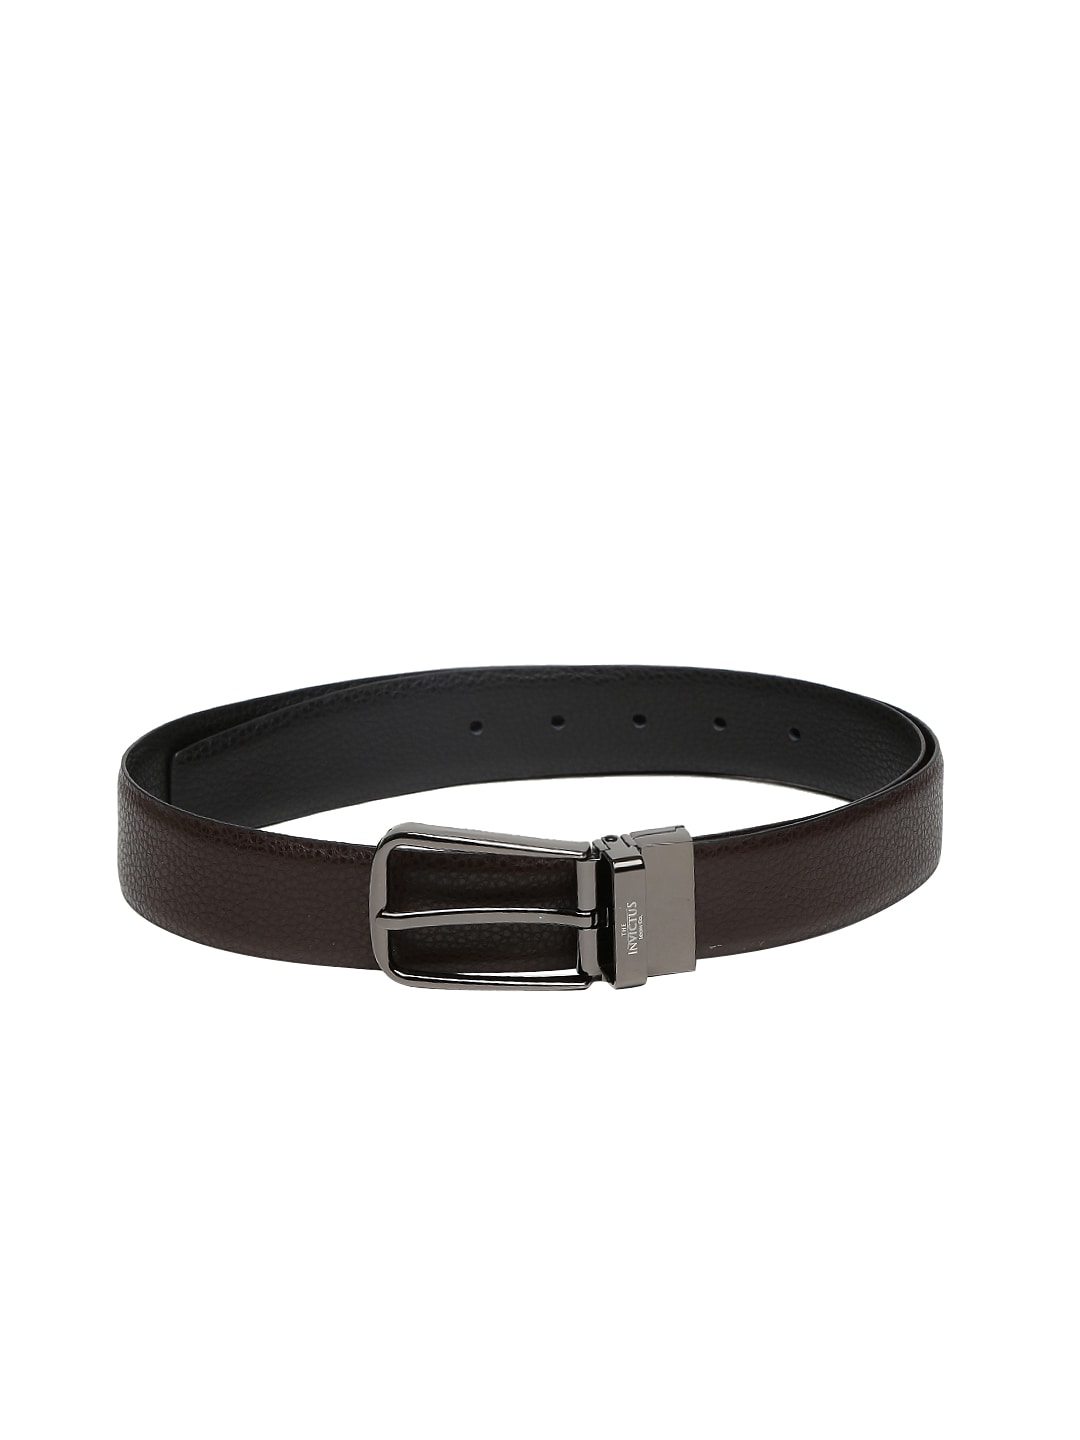 INVICTUS Men Black & Brown Leather Reversible Belt